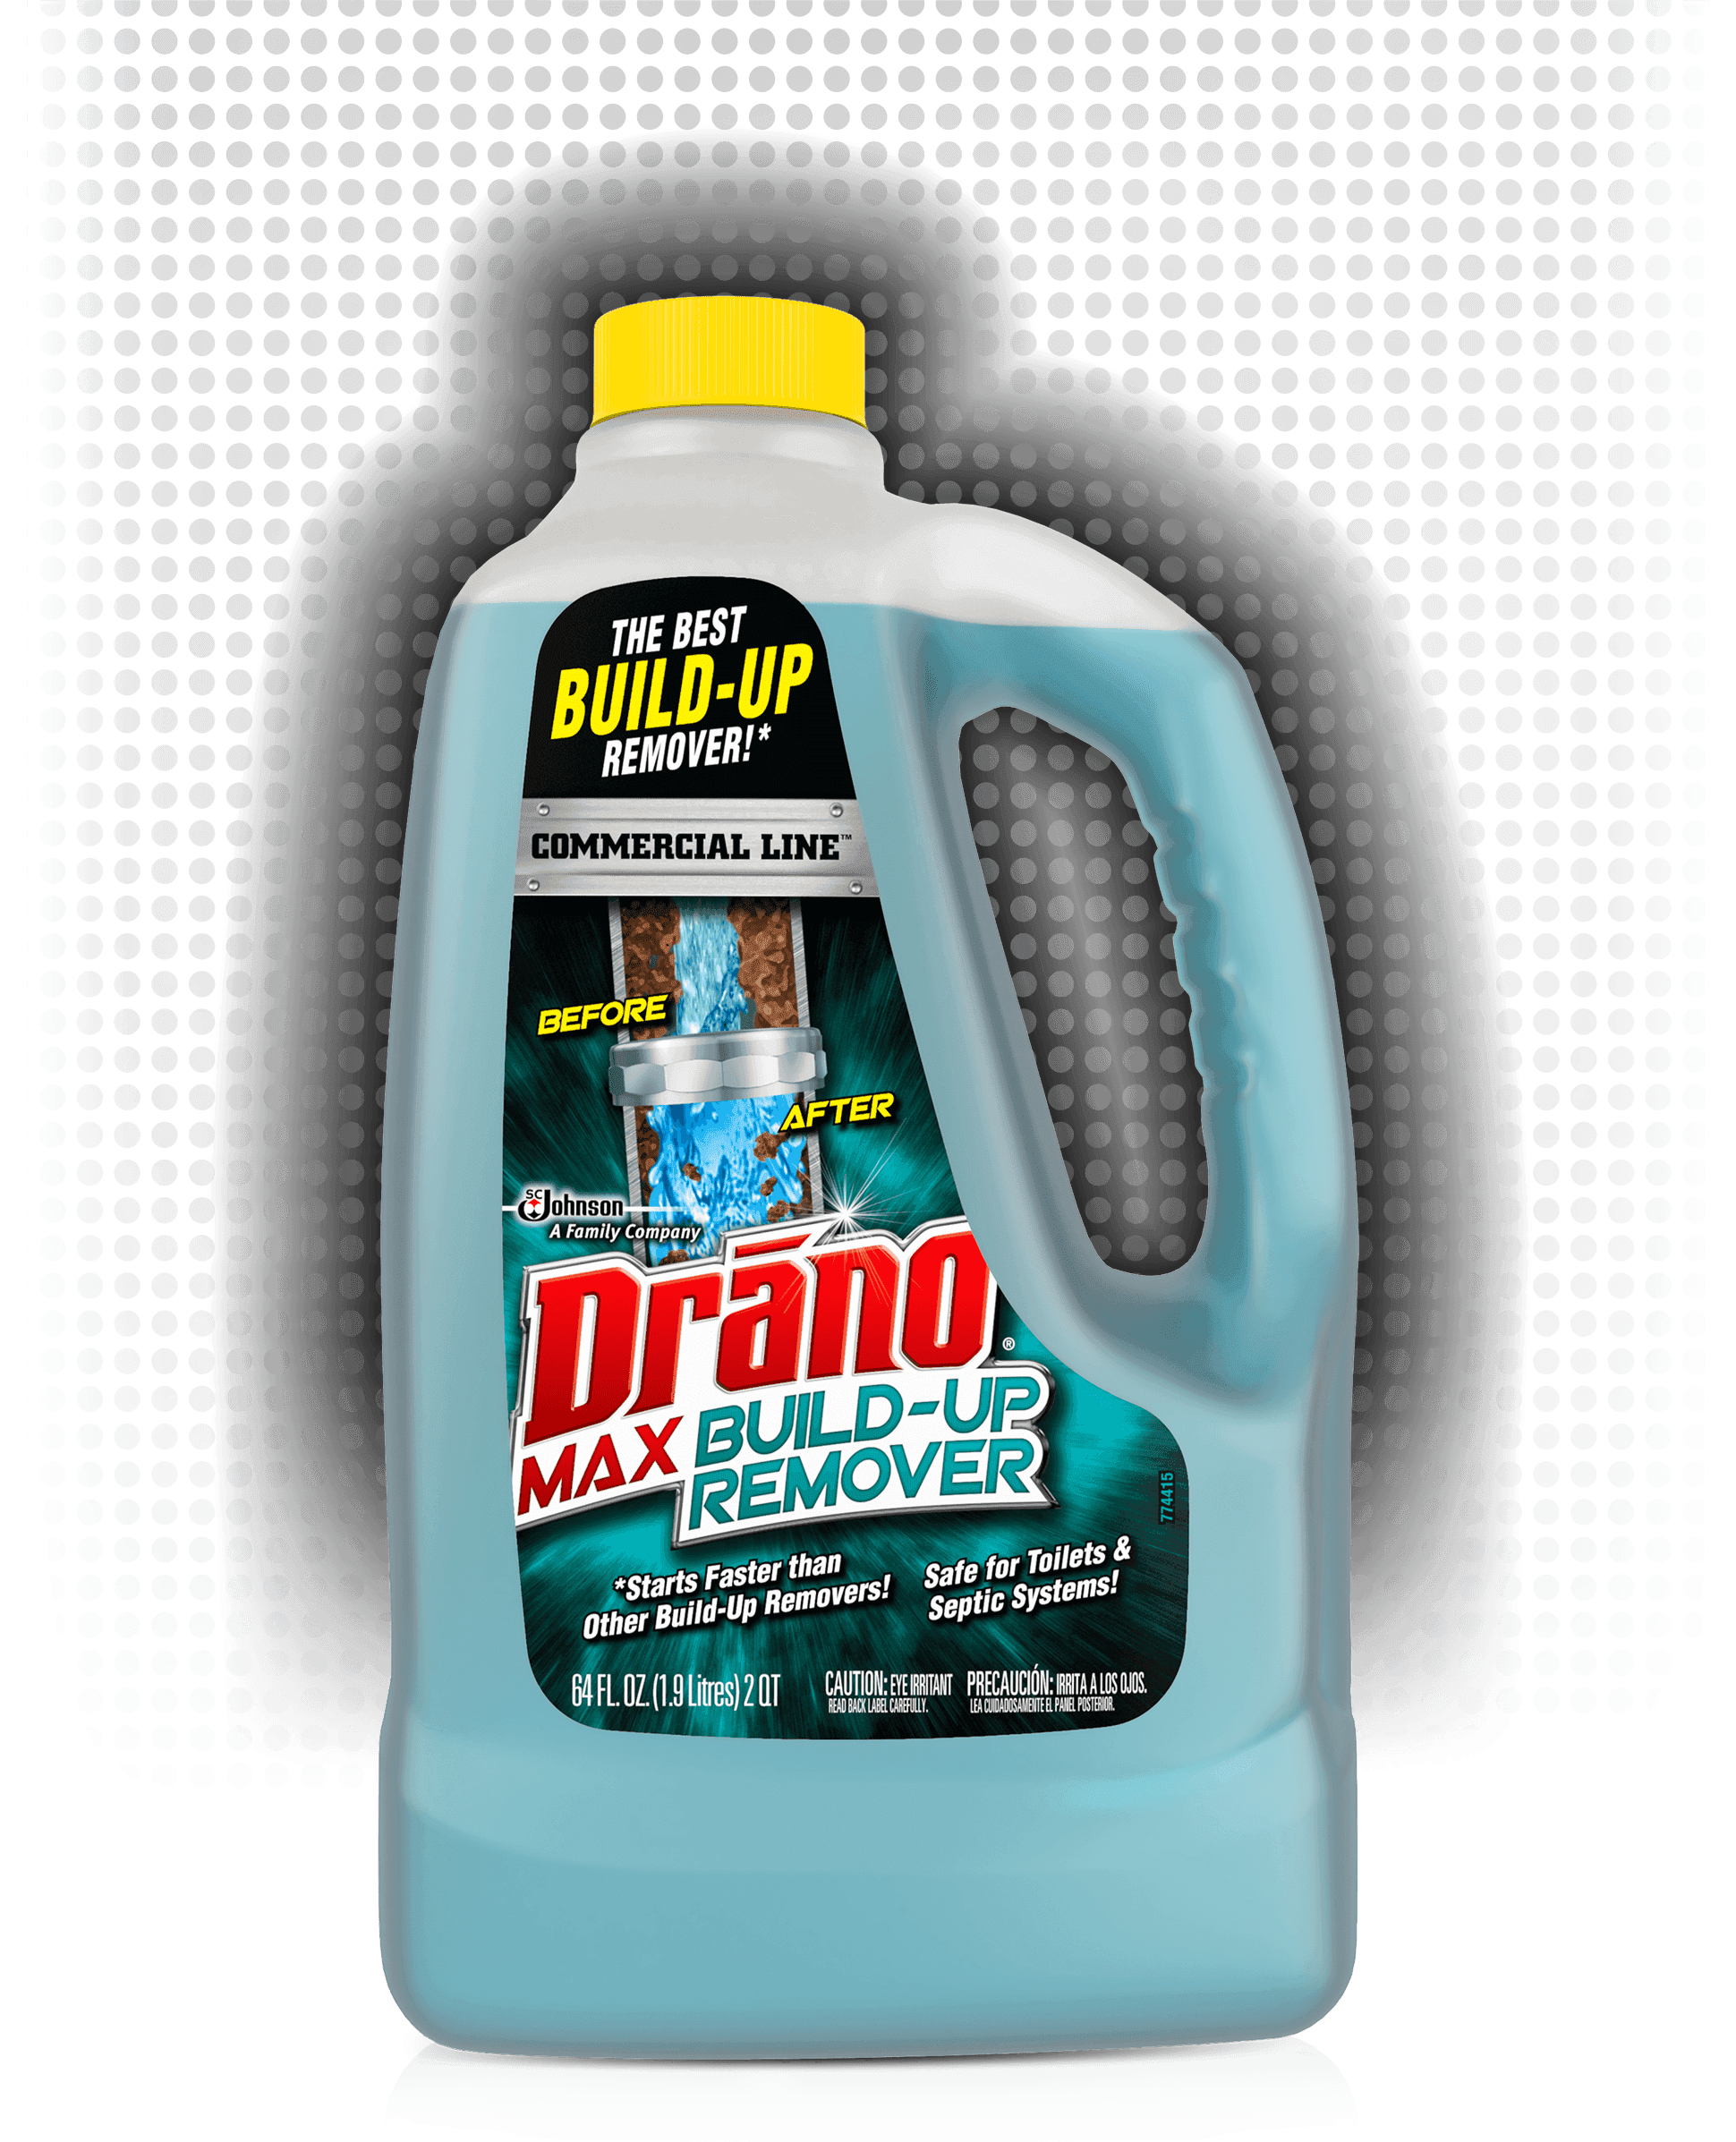 http://www.whatsinsidescjohnson.com/~/media/images/products/CA/drano ...